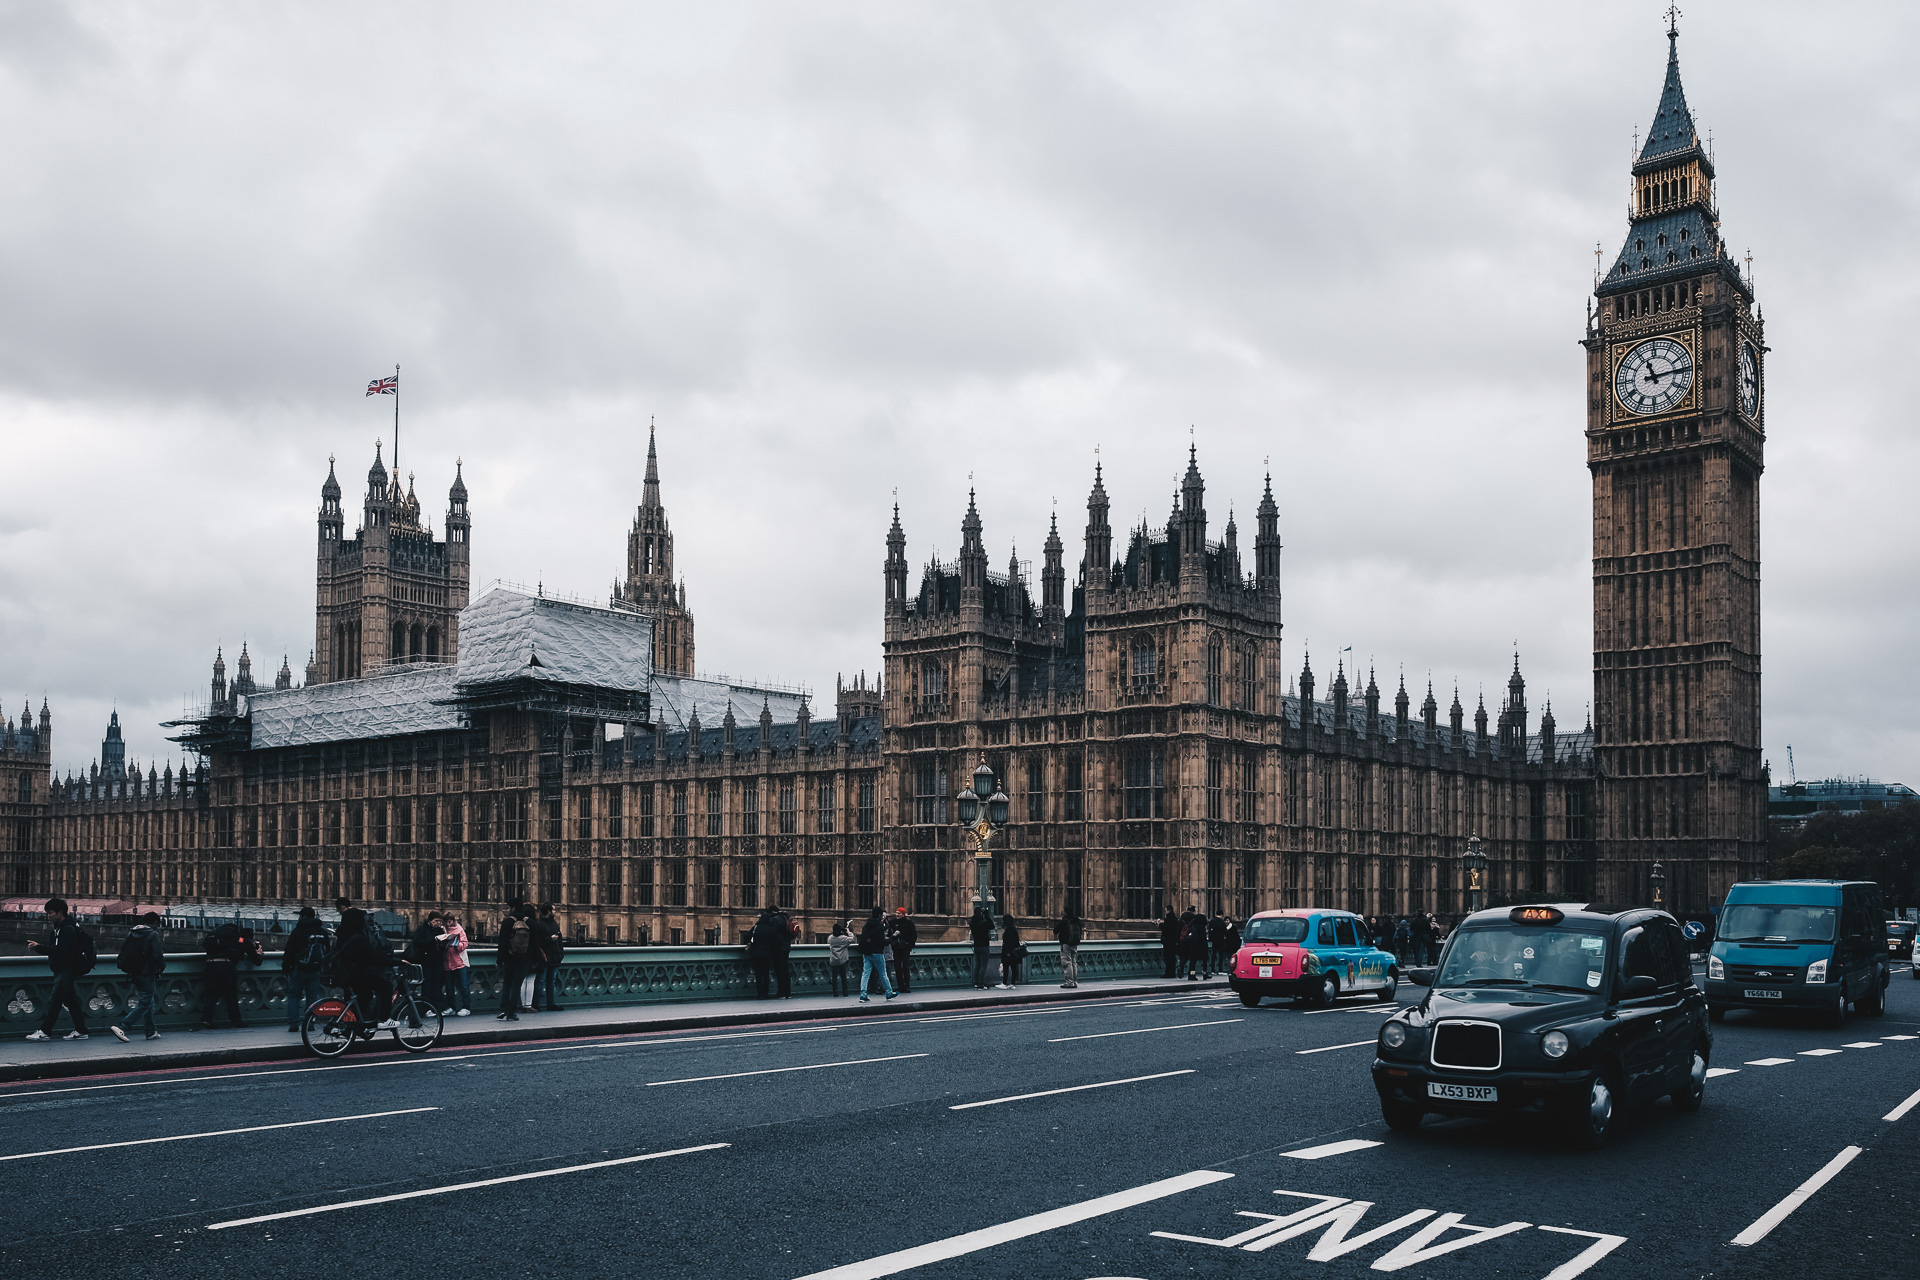 Planning to visit Bricsys 2018? Here is what I did in 48h in London.